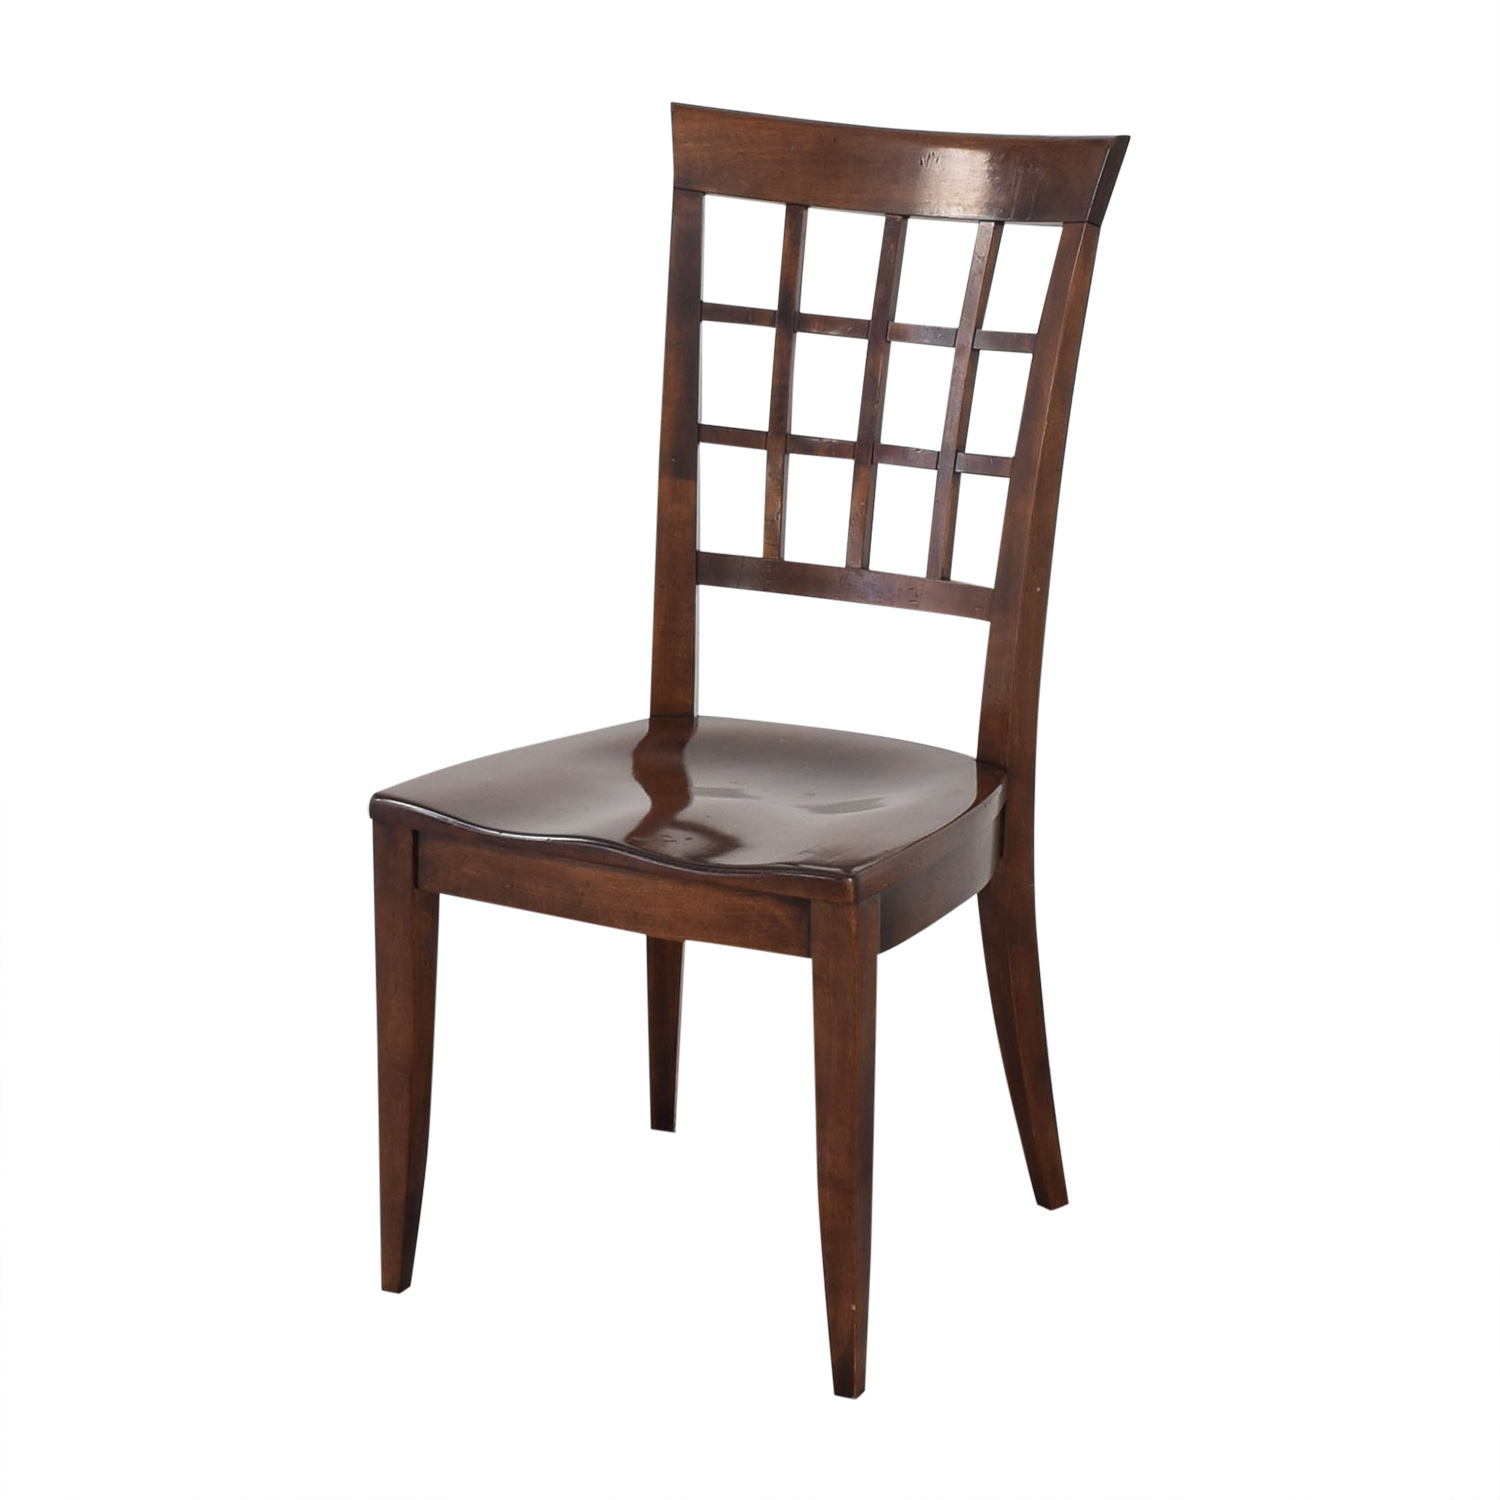 Stickley Furniture Stickley Furniture Cambridgeport Side Chairs on sale